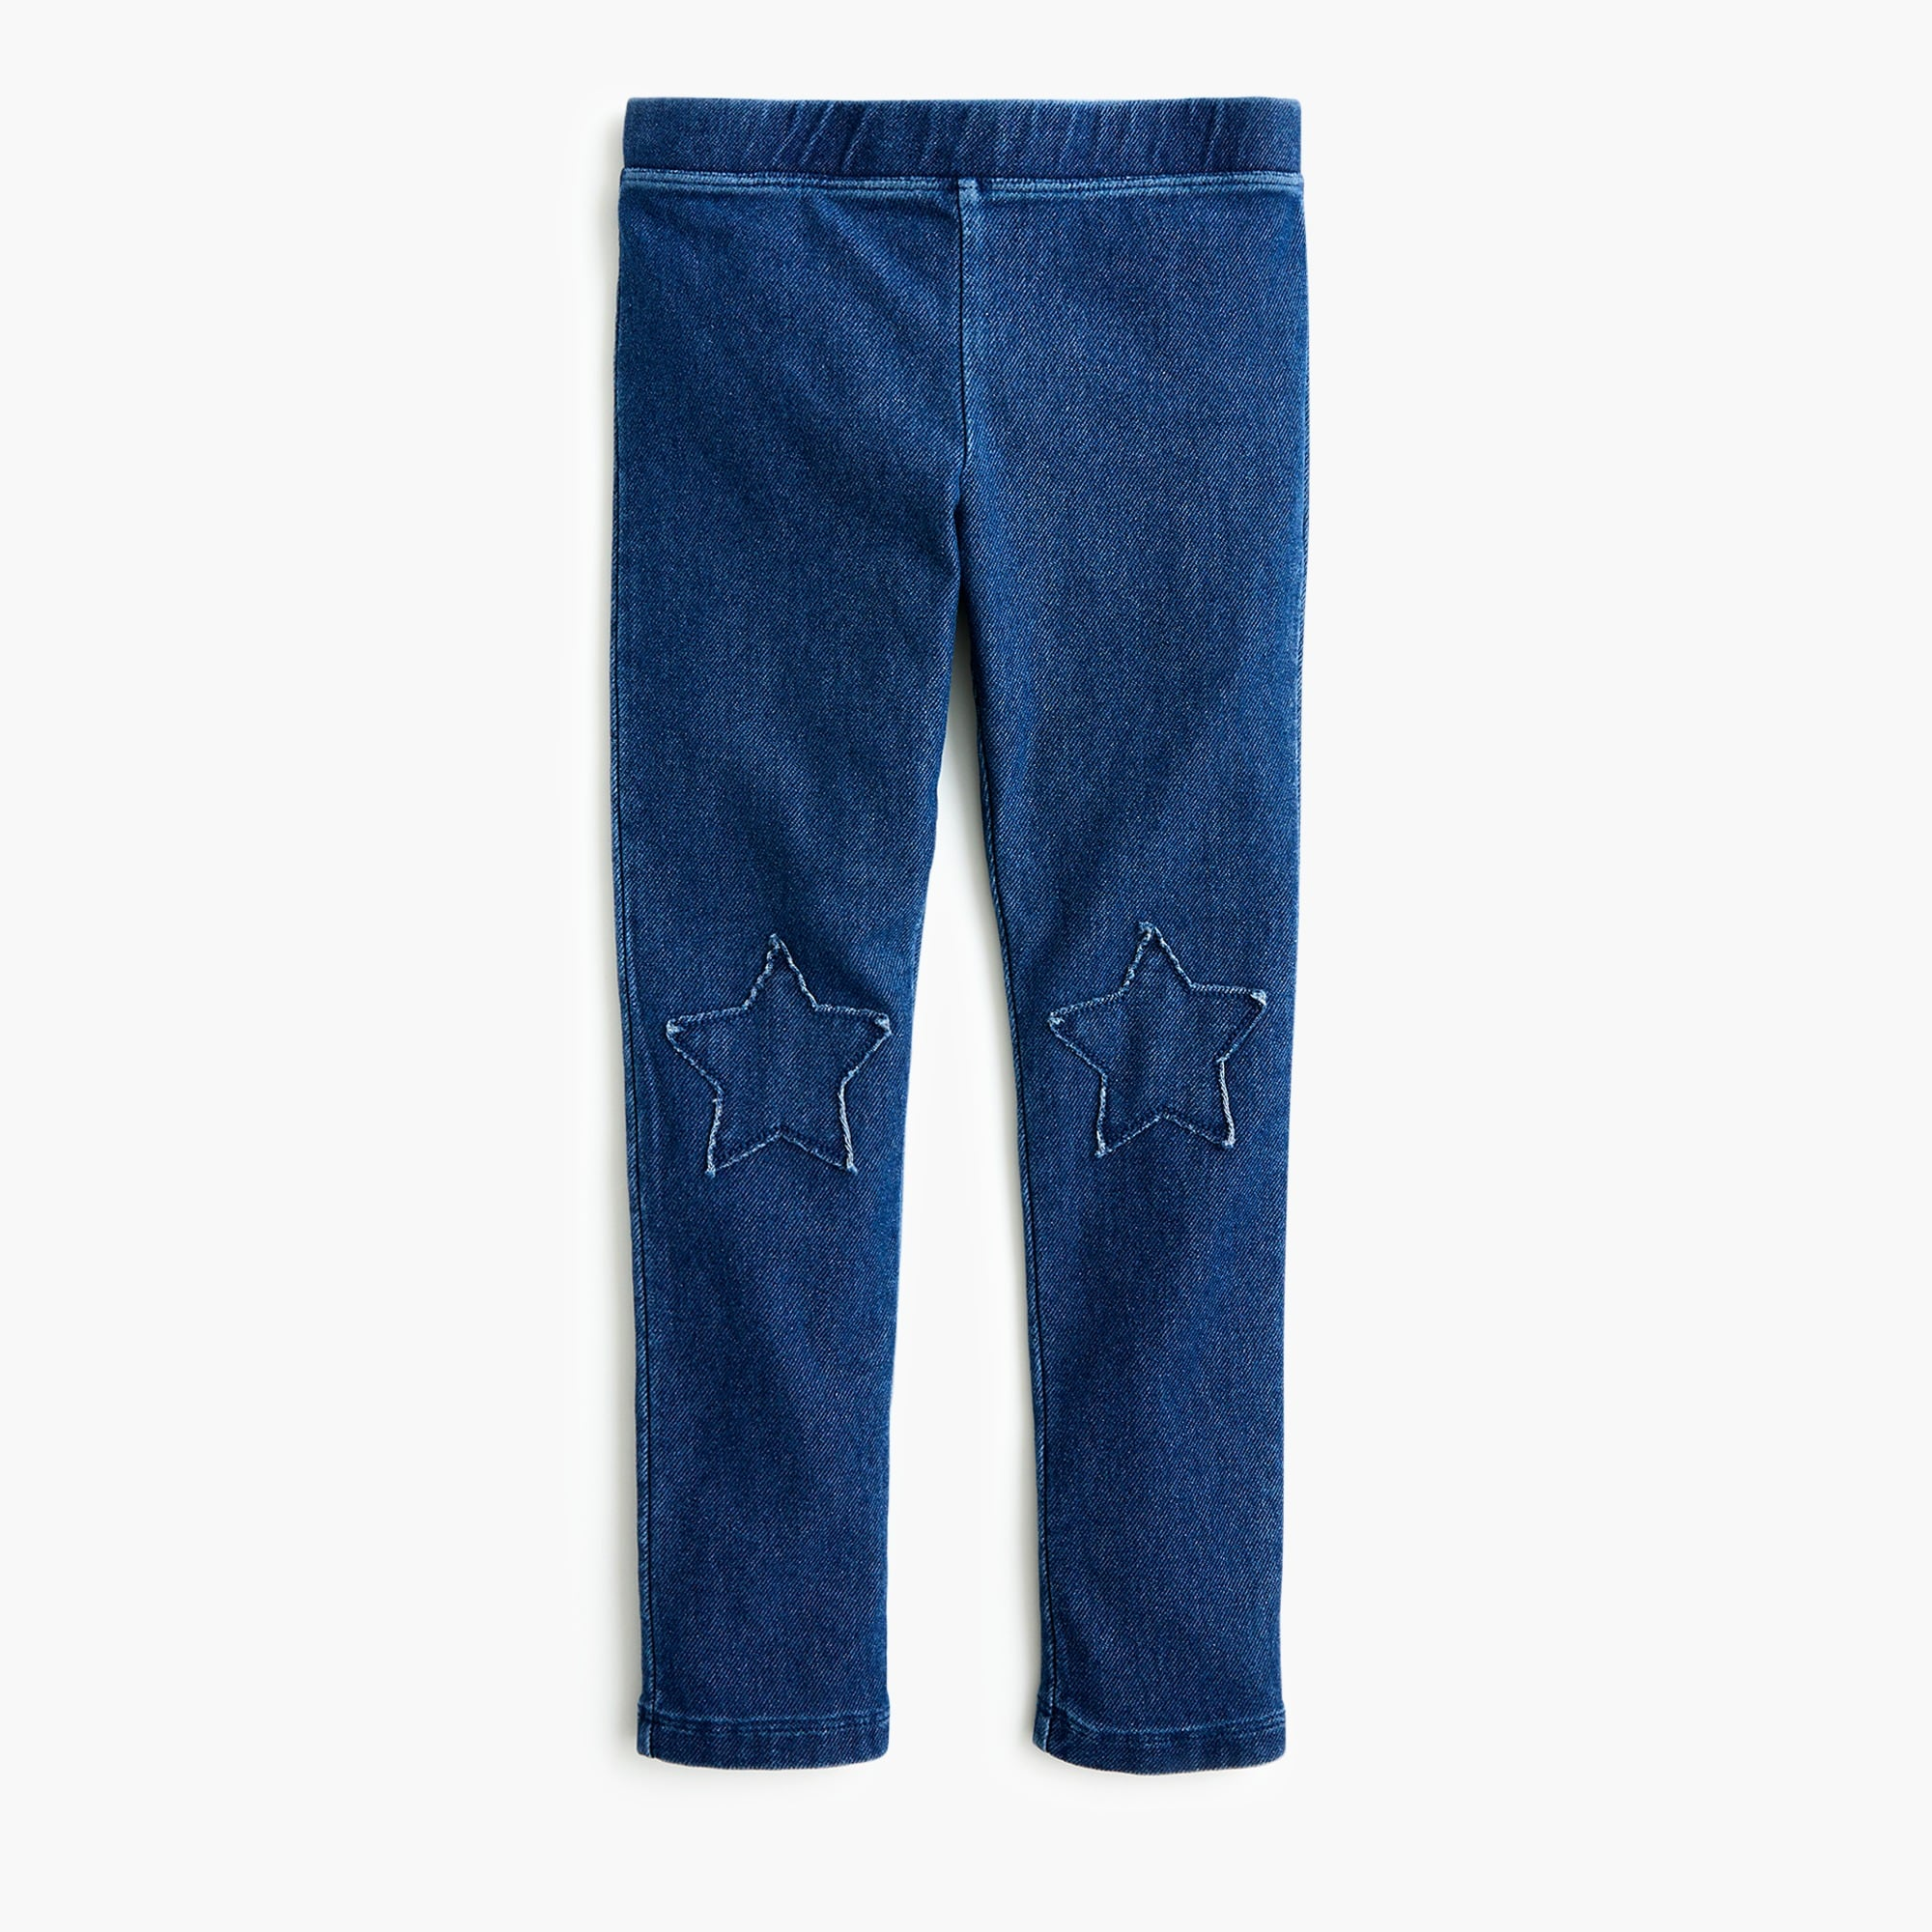 girls Girls' denim leggings with star-shaped patches